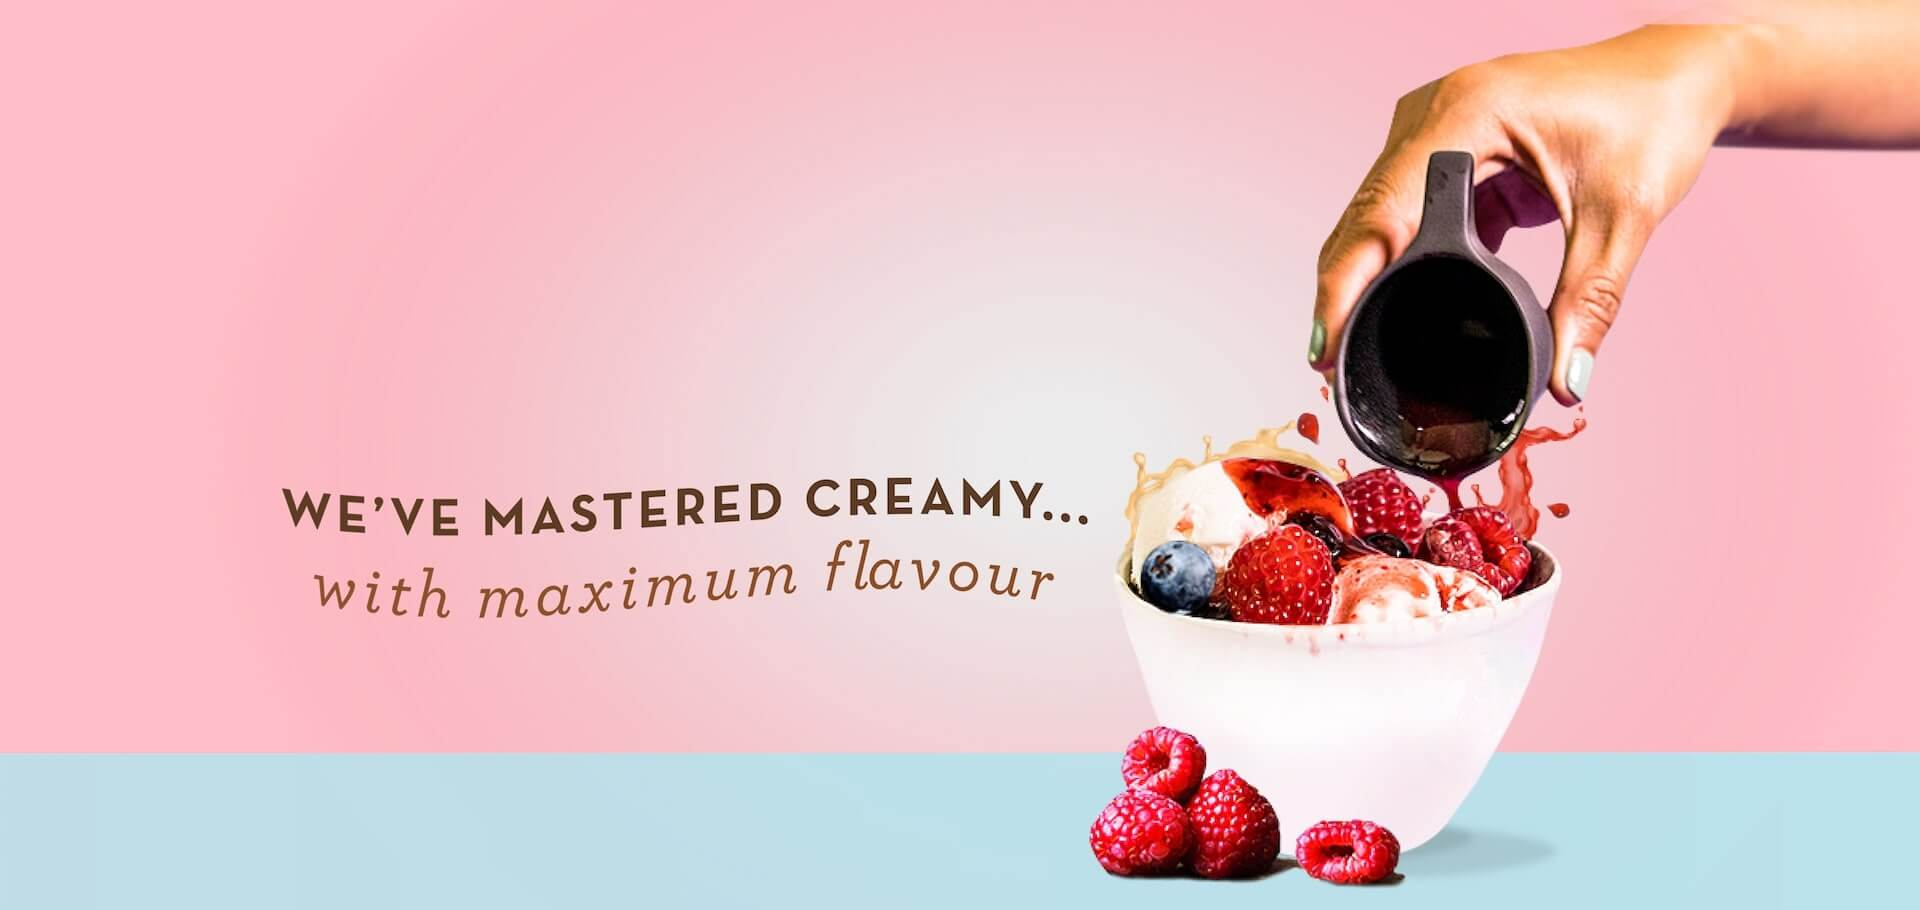 We've mastered creamy with maximum flavour